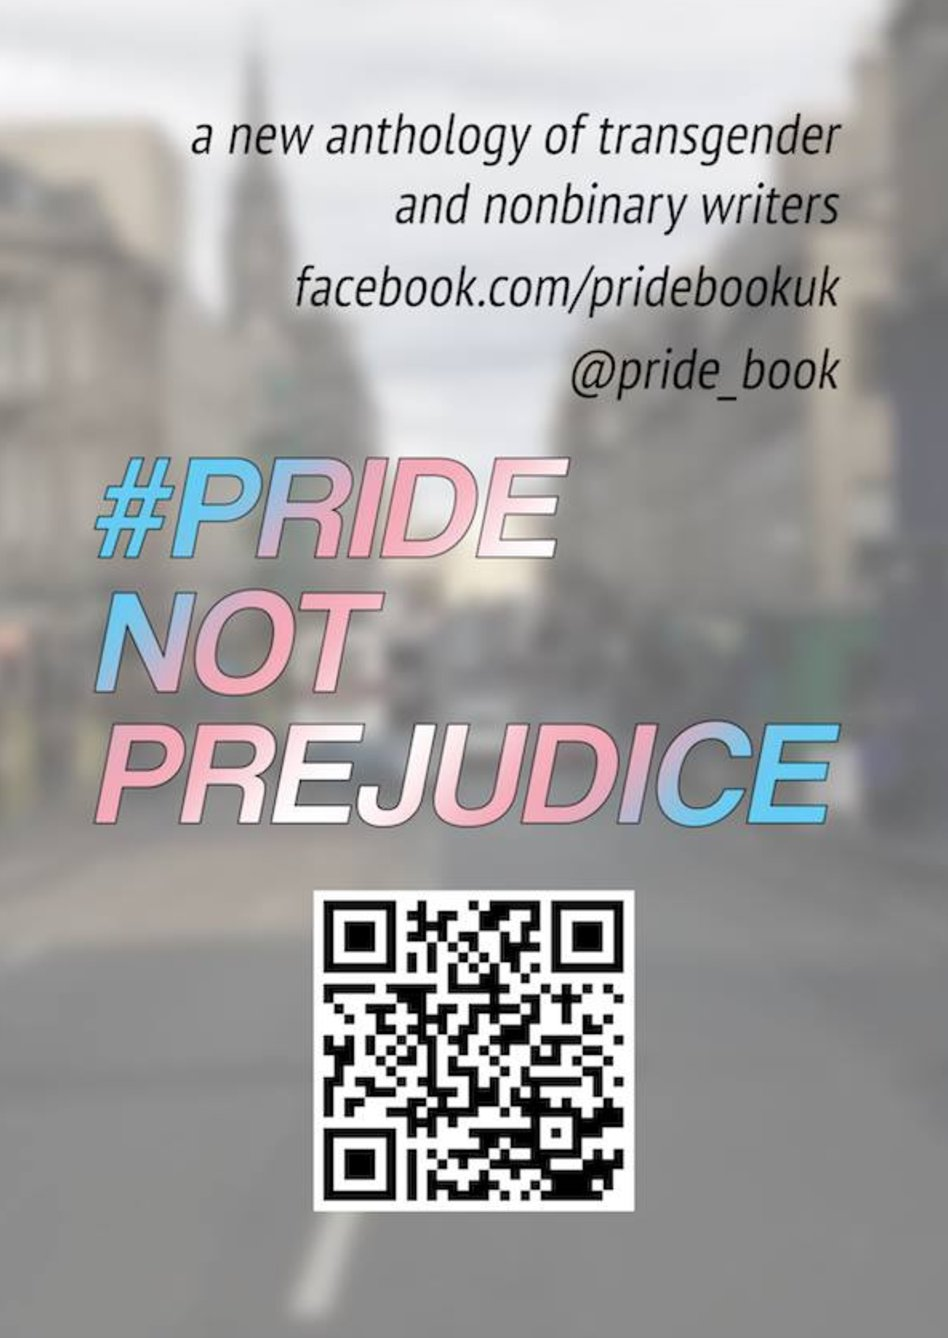 pride not prejudice brighton and hove pride the uk s the varied essays will highlight the fact that that there isn t just one way to be a trans or non binary person